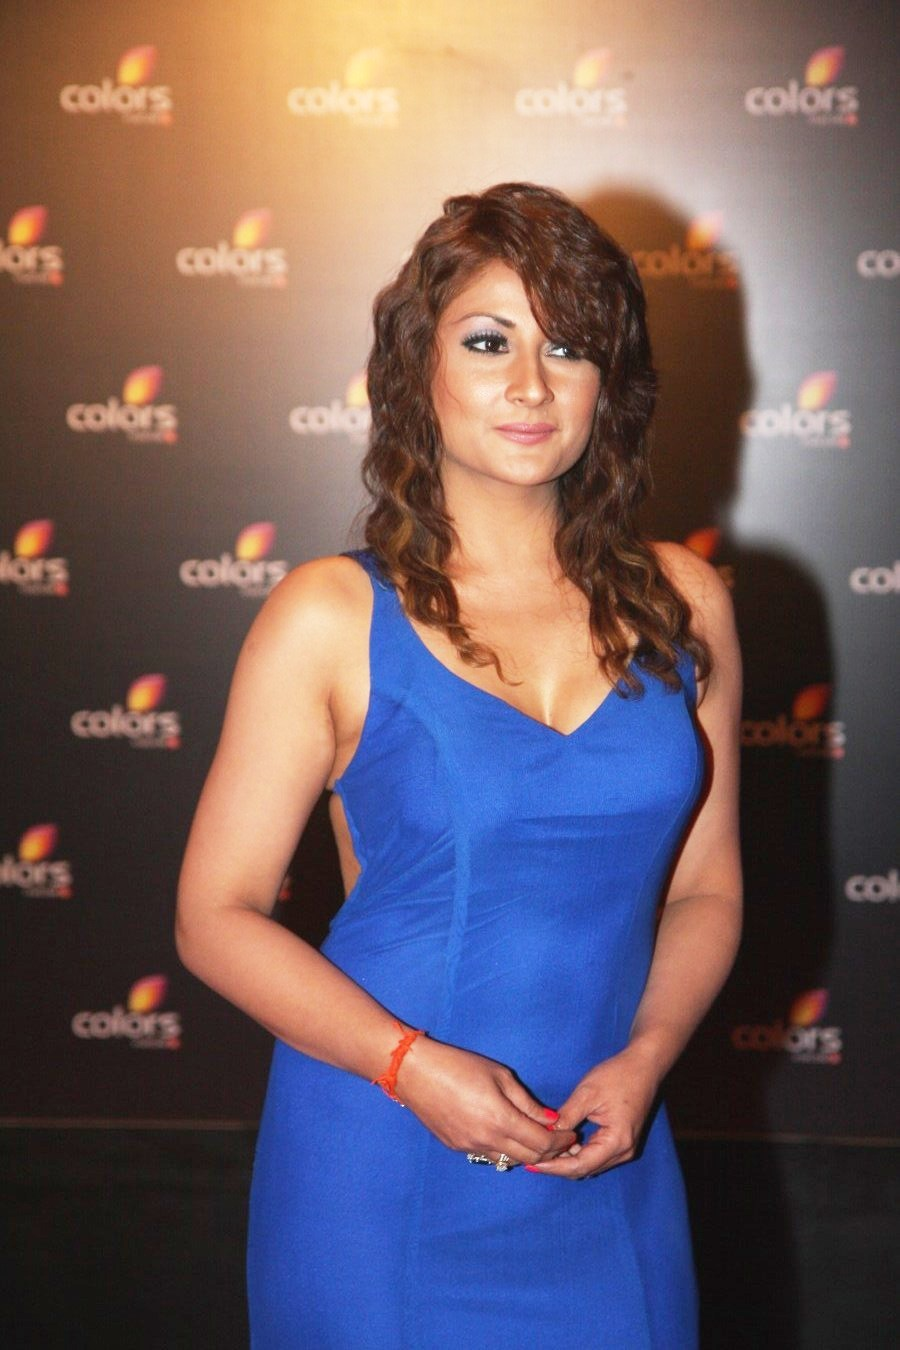 urvashi dholakia bigg boss 6urvashi dholakia wiki, urvashi dholakia sons, urvashi dholakia twitter, urvashi dholakia bigg boss 6, urvashi dholakia latest, urvashi dholakia wedding photos, urvashi dholakia birthday, urvashi dholakia biography wiki, urvashi dholakia mother, urvashi dholakia serial, urvashi dholakia net worth, urvashi dholakia bigg boss, urvashi dholakia life, urvashi dholakia biography, urvashi dholakia 2016, urvashi dholakia bani, urvashi dholakia parents, urvashi dholakia profile, urvashi dholakia hamara, urvashi dholakia husband